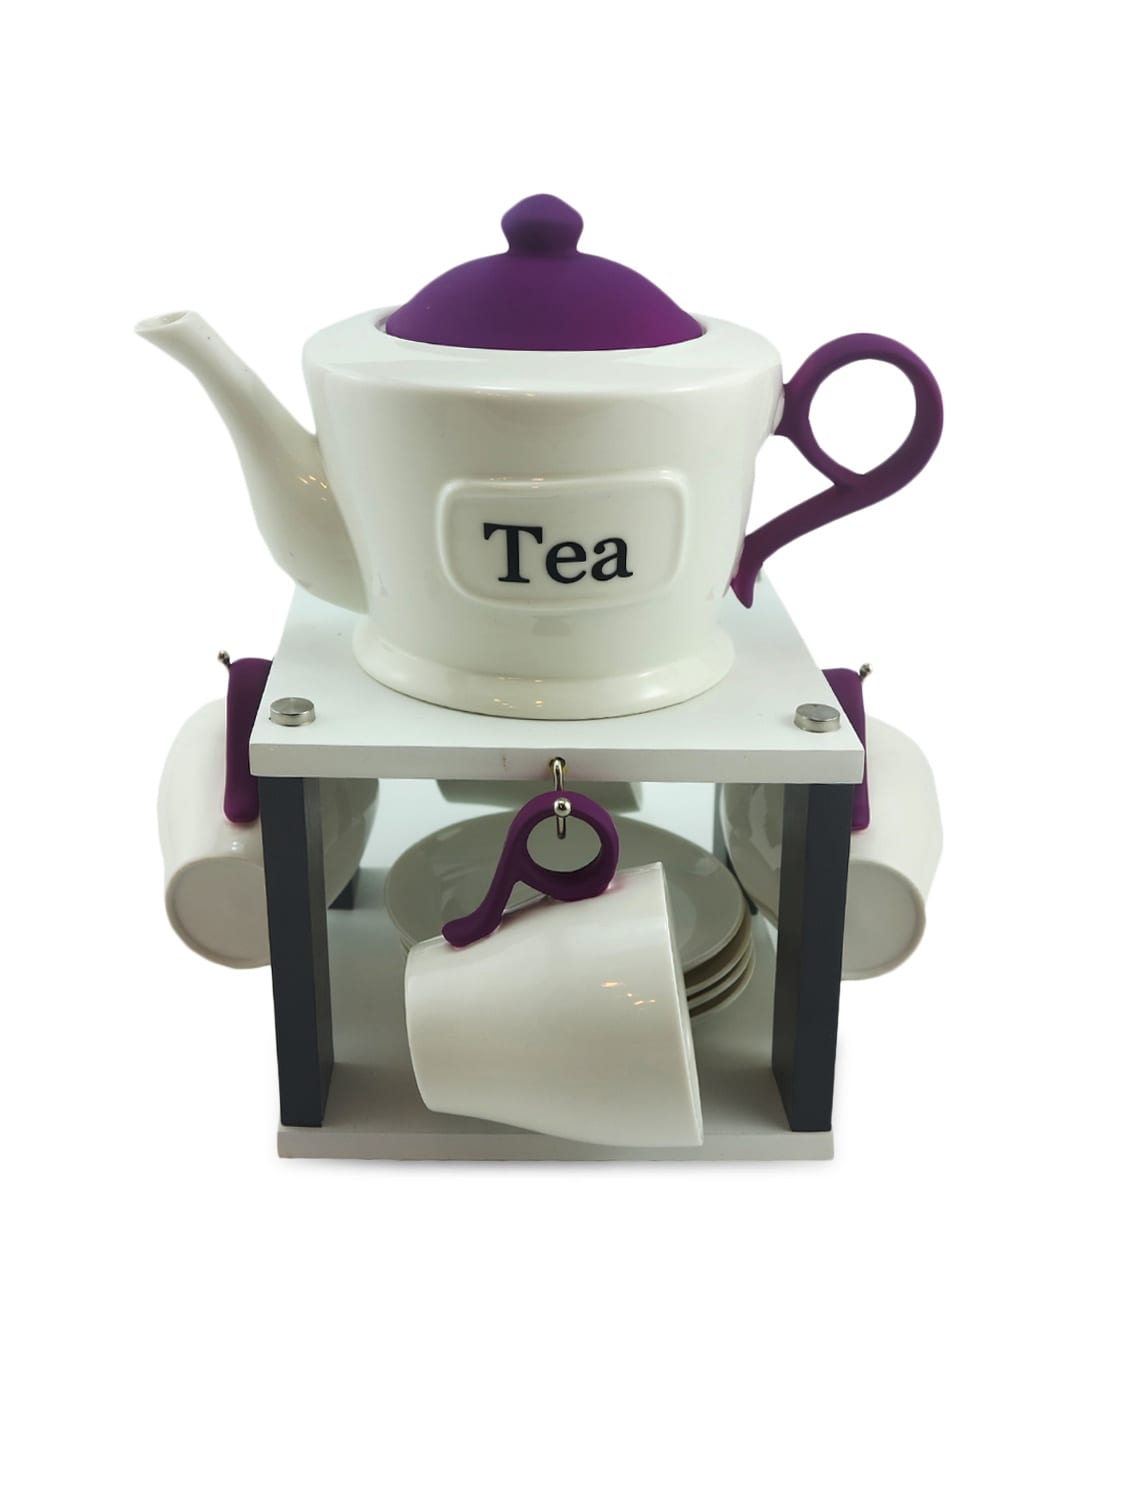 White Ceramic Tea Set Of 8 With A Kettle And Stand - By